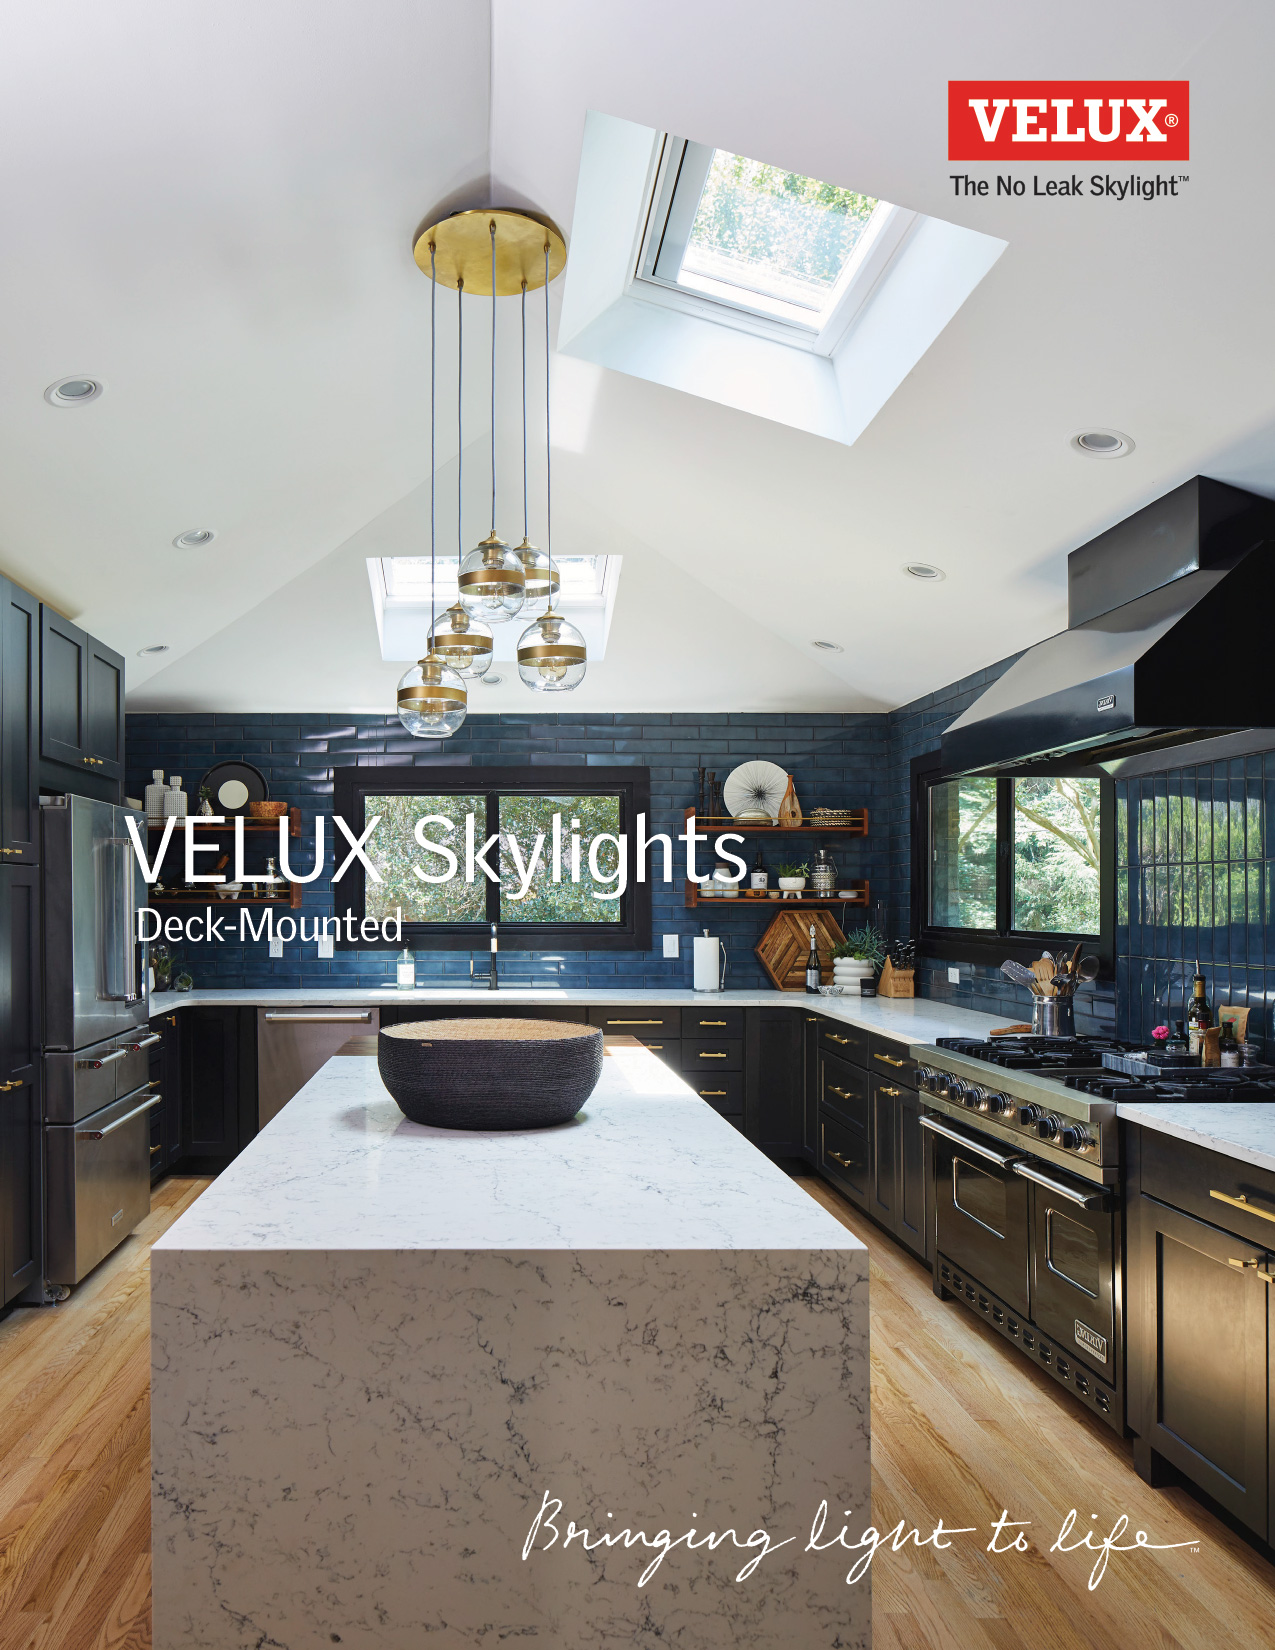 Velux Reference concernant free forms 2019 » velux skylight size chart | free forms